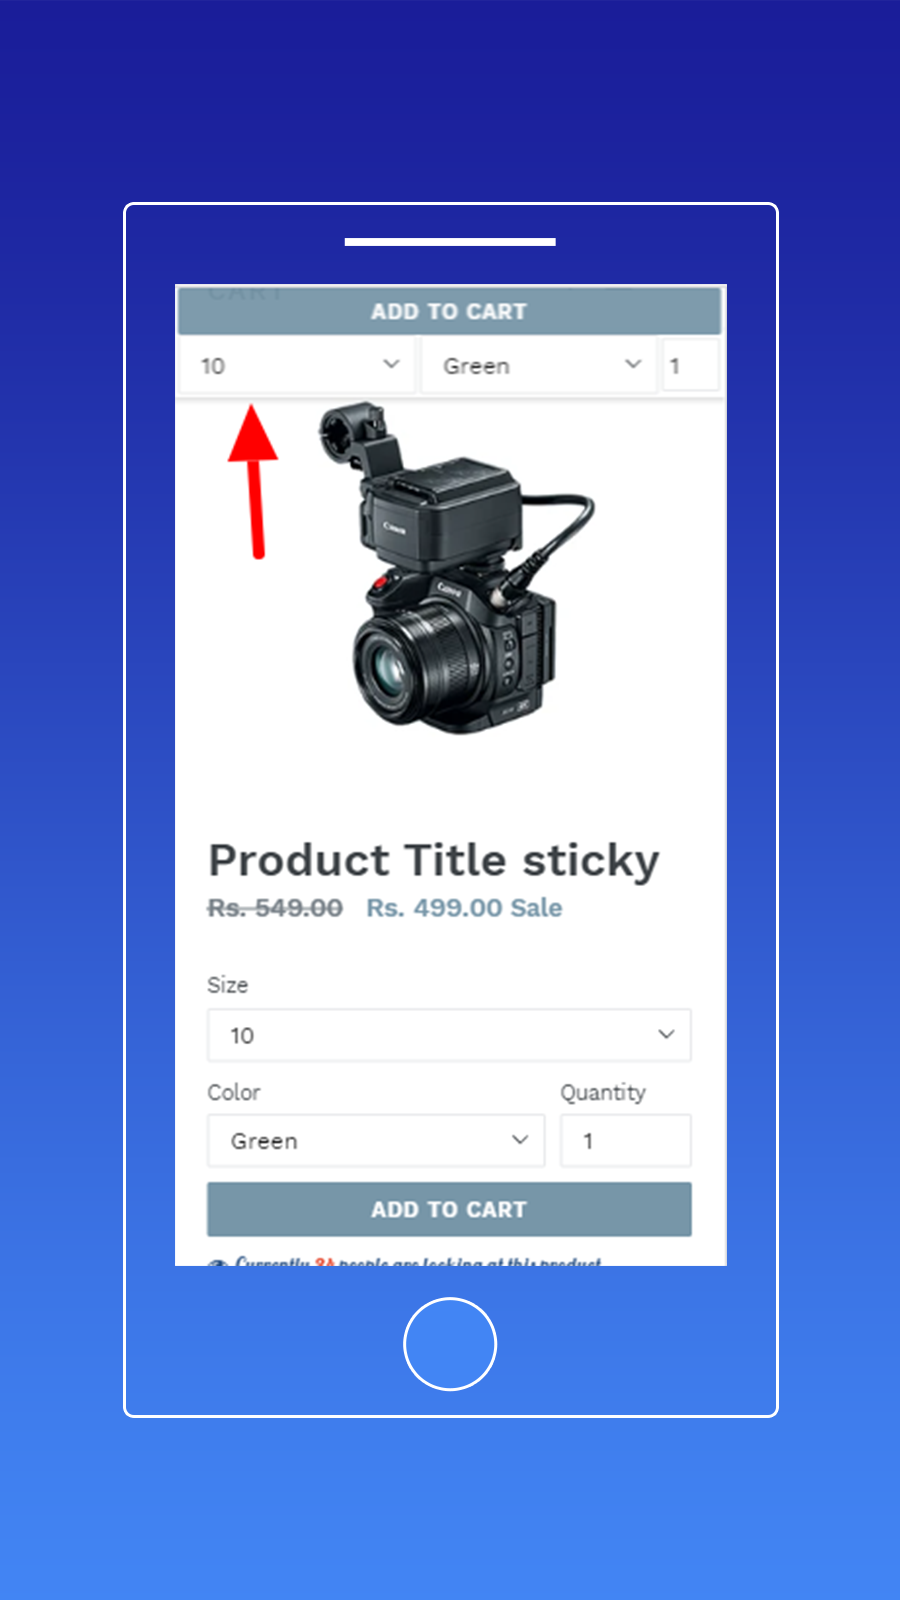 Sticky add to cart Only Option and Buynow Button